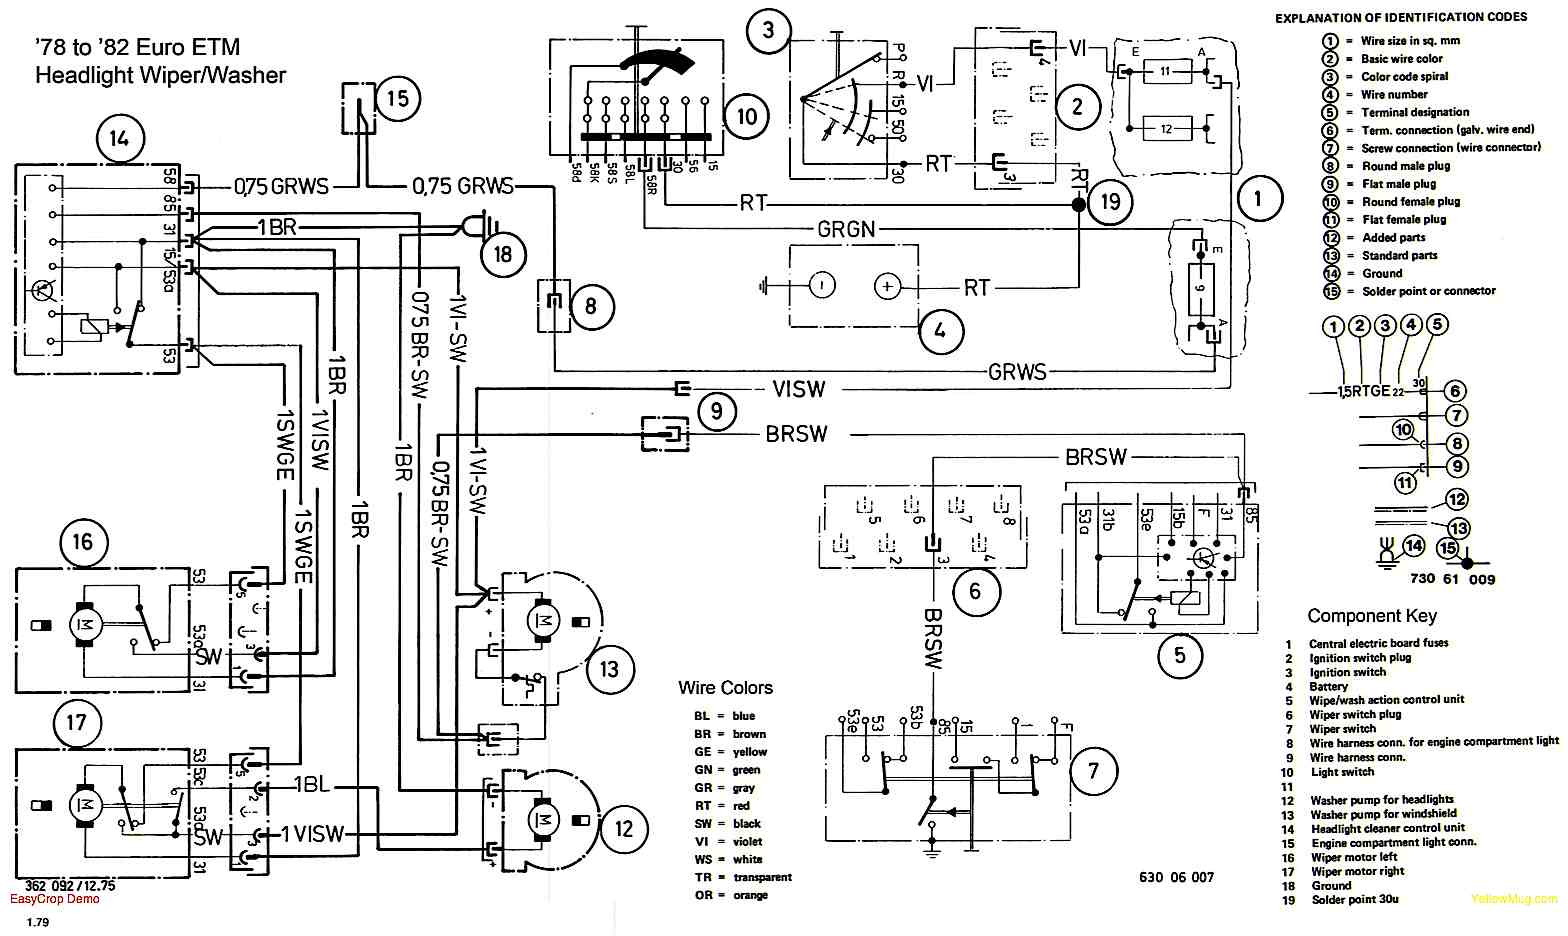 Headlight Cleaners Composit on 2001 Bmw 325i Fuse Box Diagram